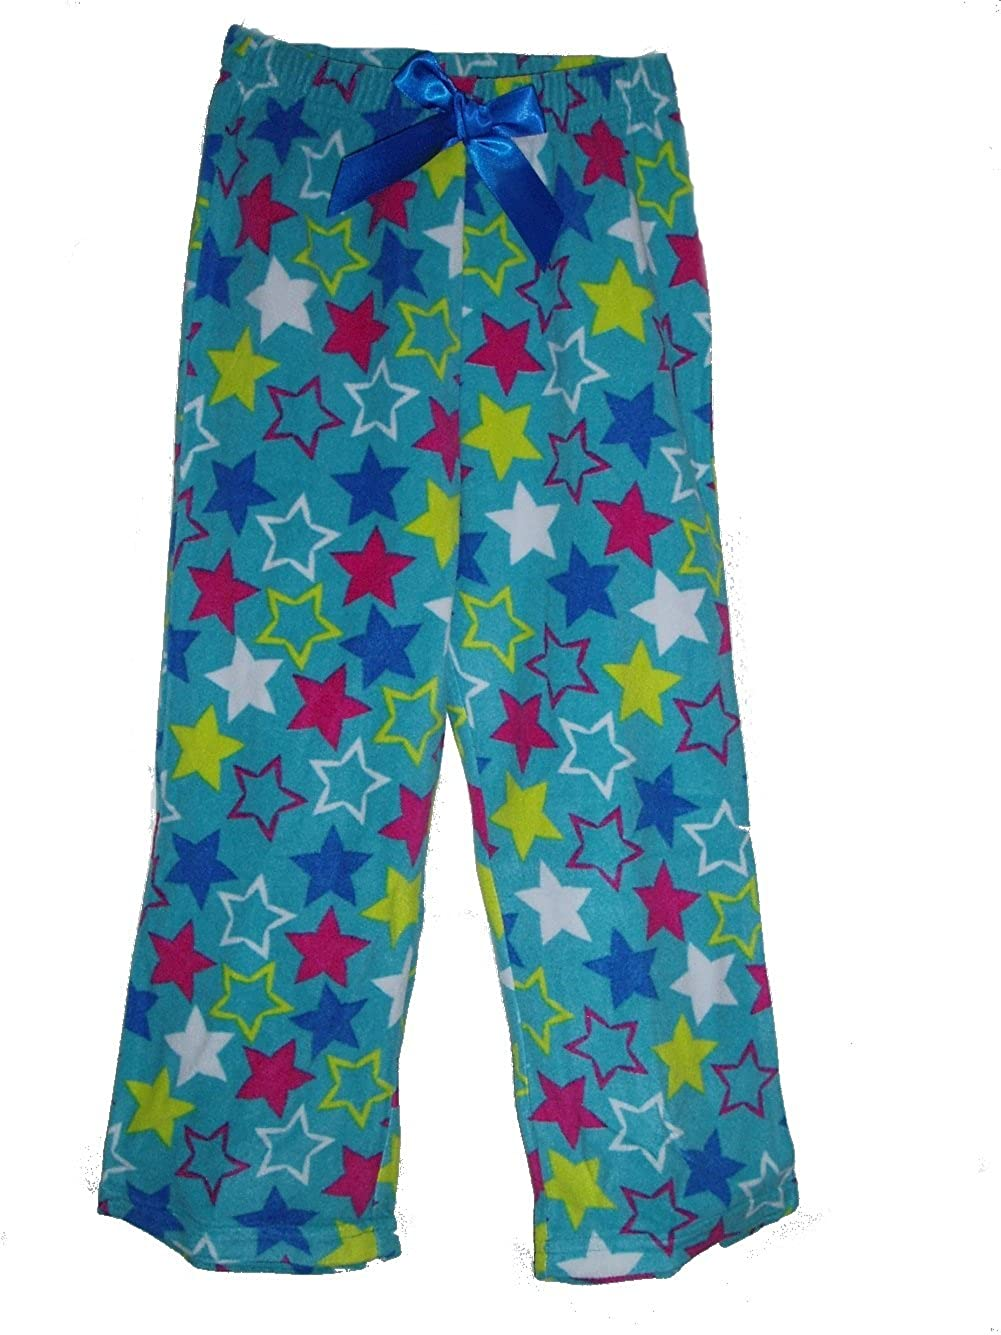 Jellifish Girls Blue with Stars Fleece Sleep Pajama Pant Jelli Fish